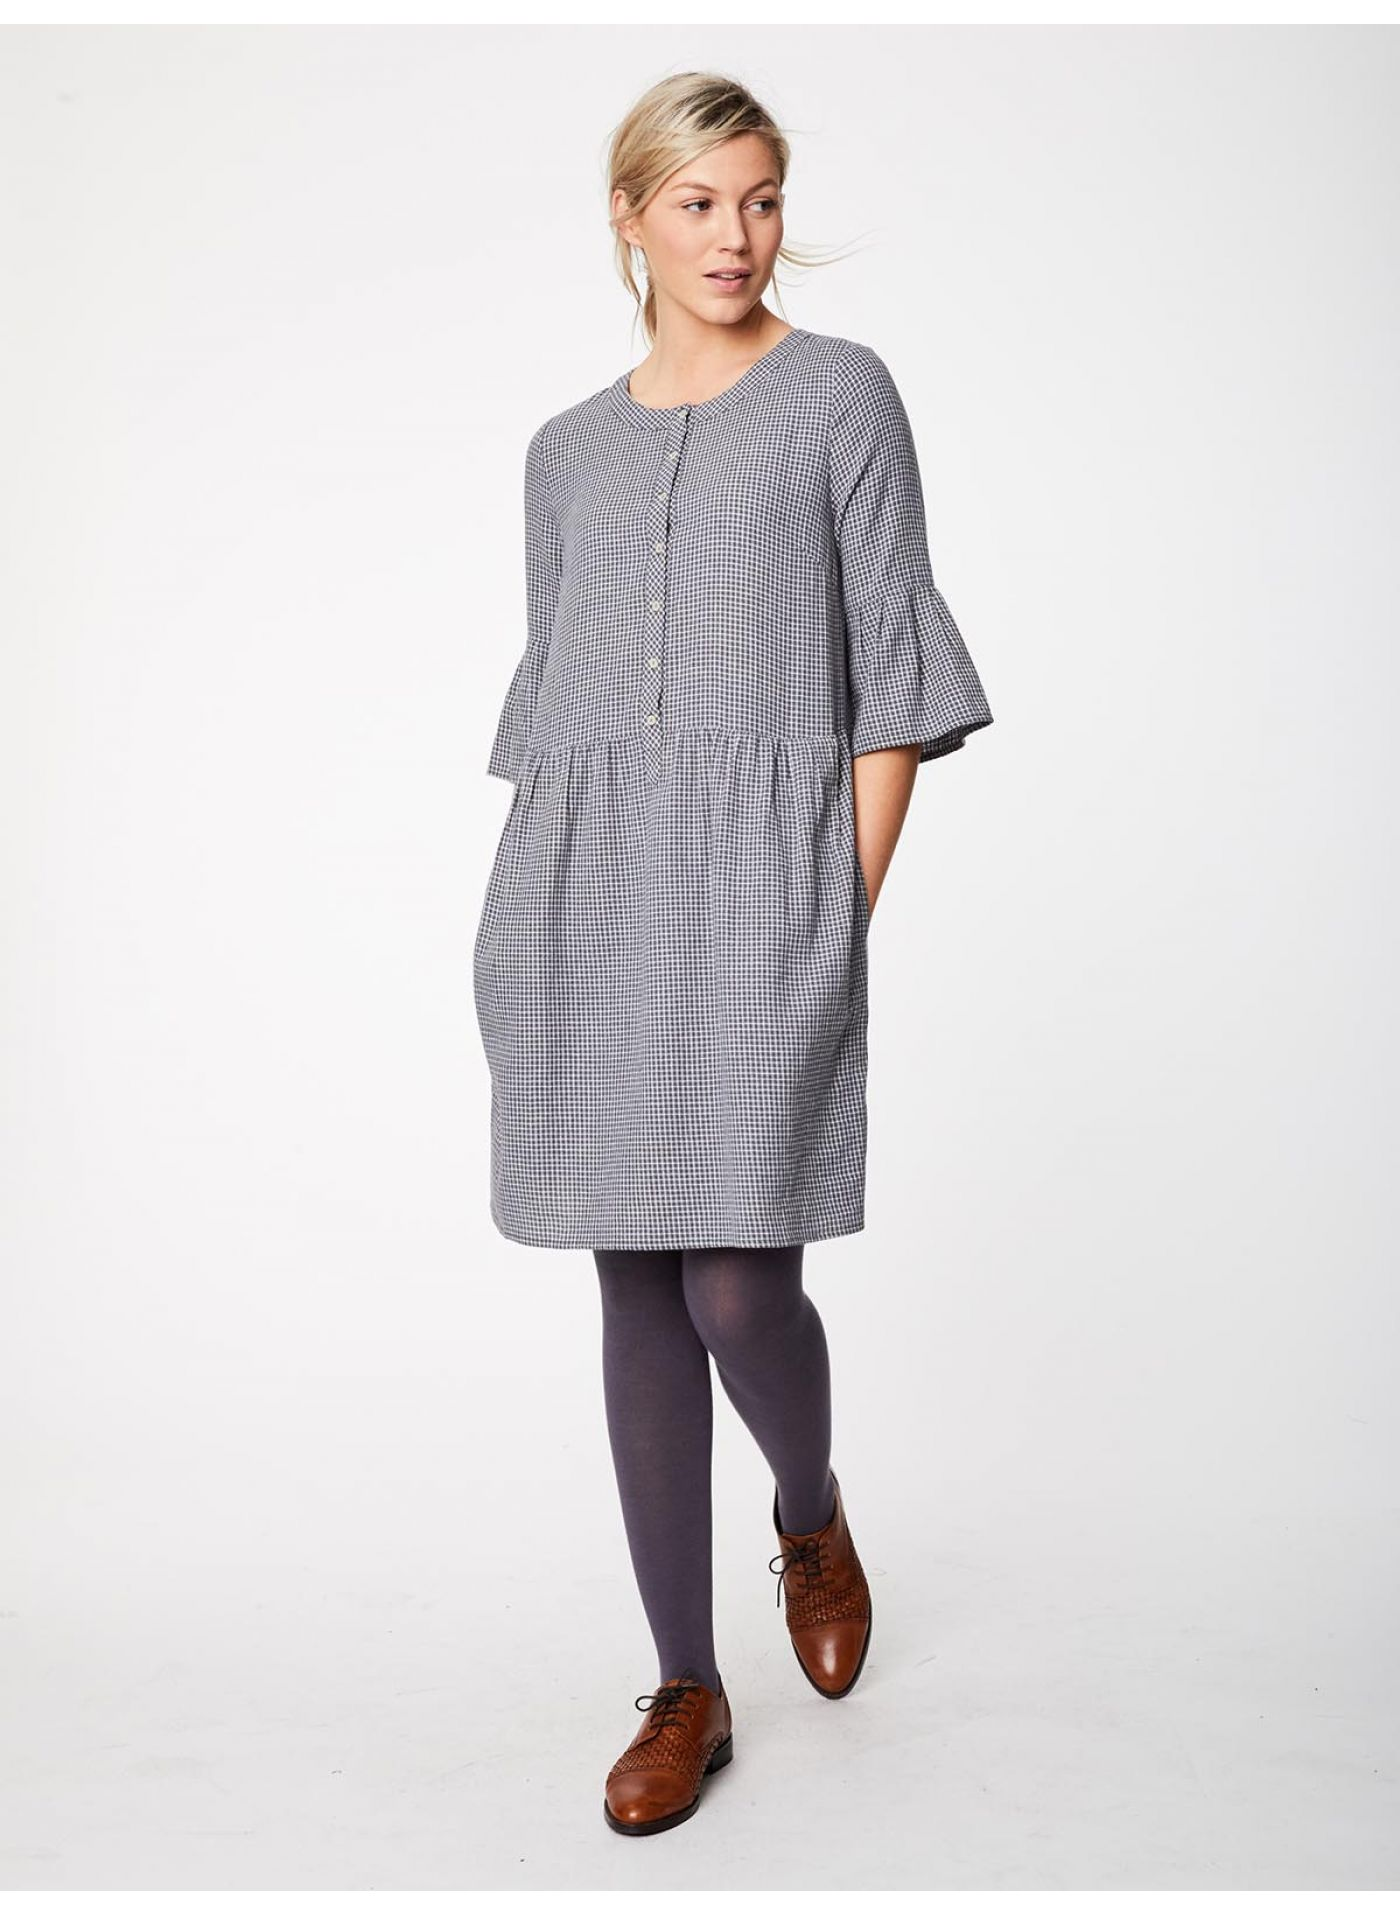 nancy-straughan-sustainible-ethical-clothing-fashion-brands-best-thought.jpg